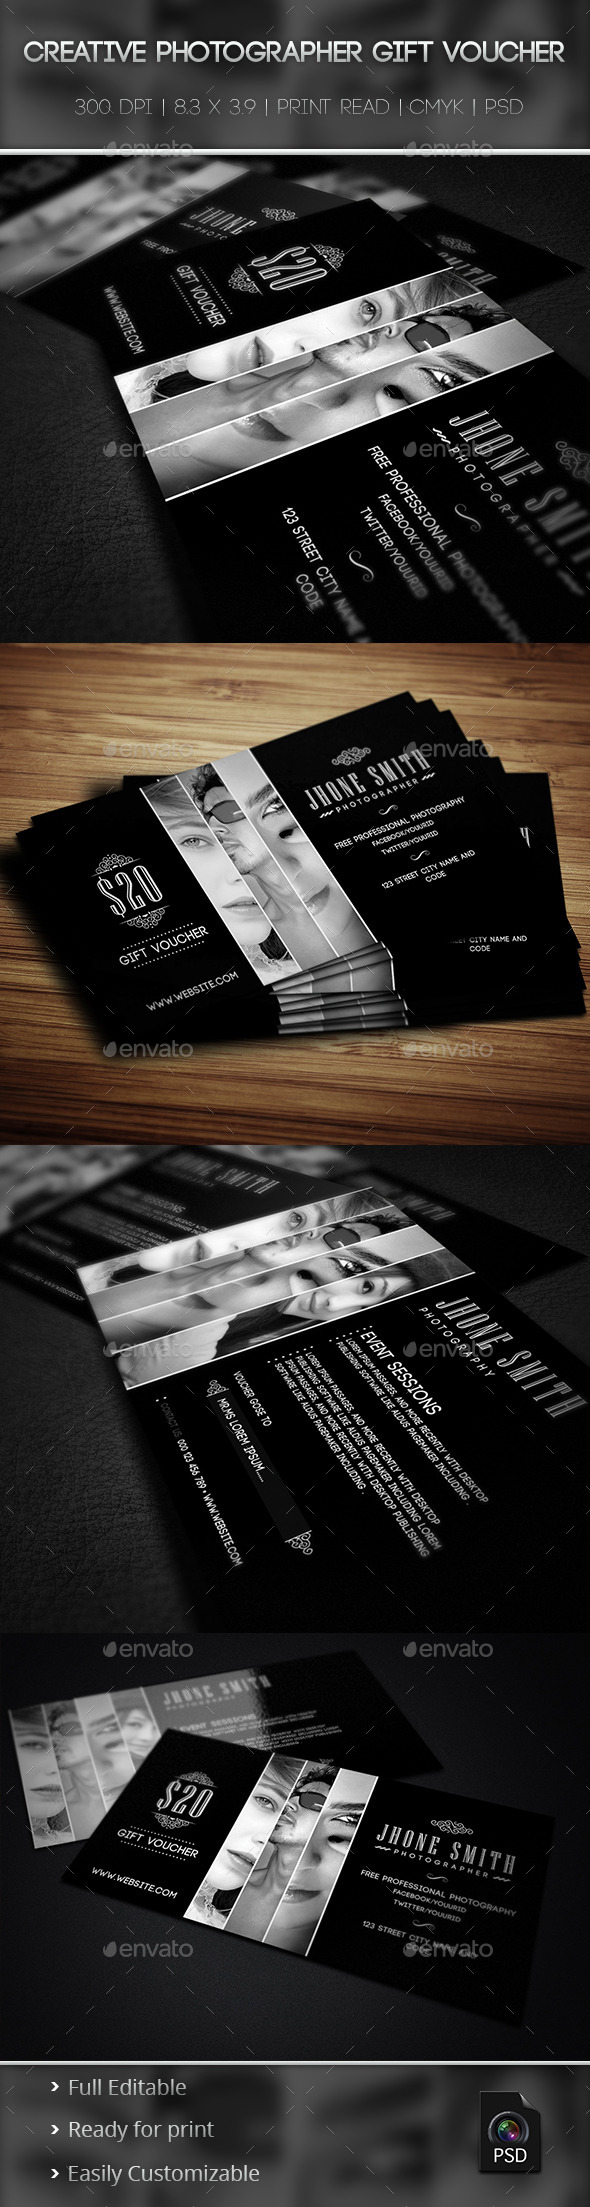 GraphicRiver Creative Photographer Gift Voucher 01 9439425